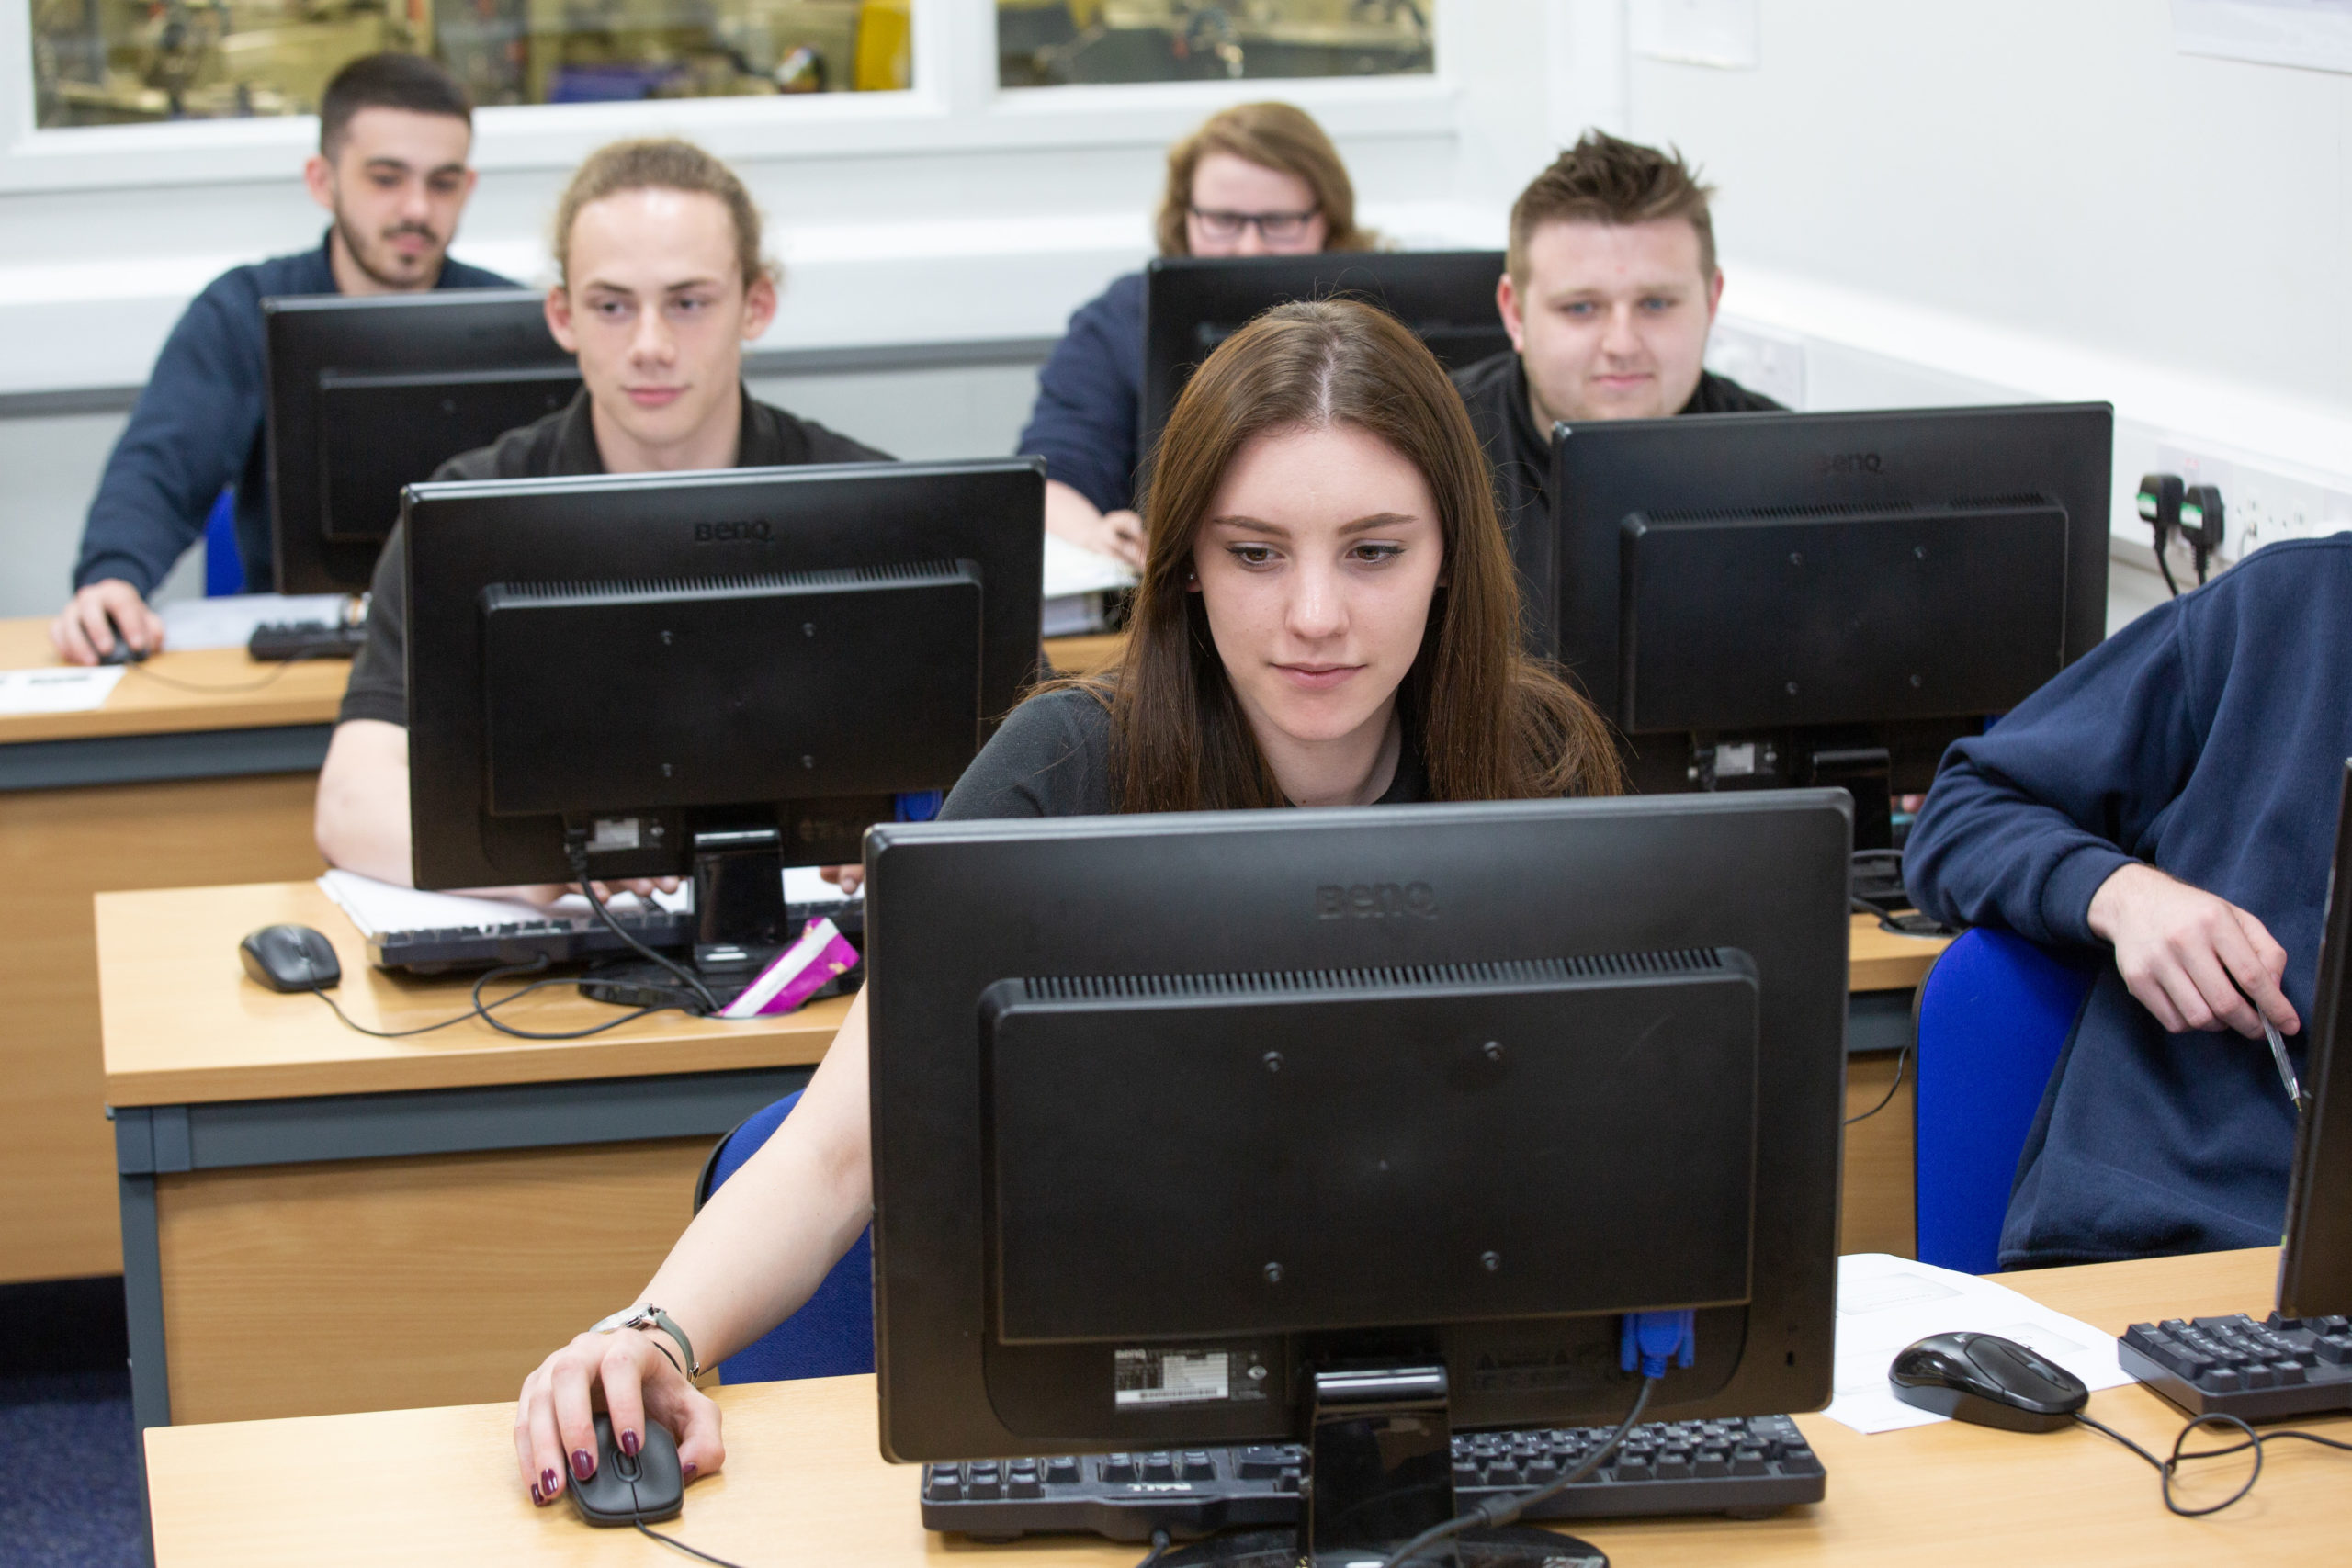 Apprentices using computers doing coursework